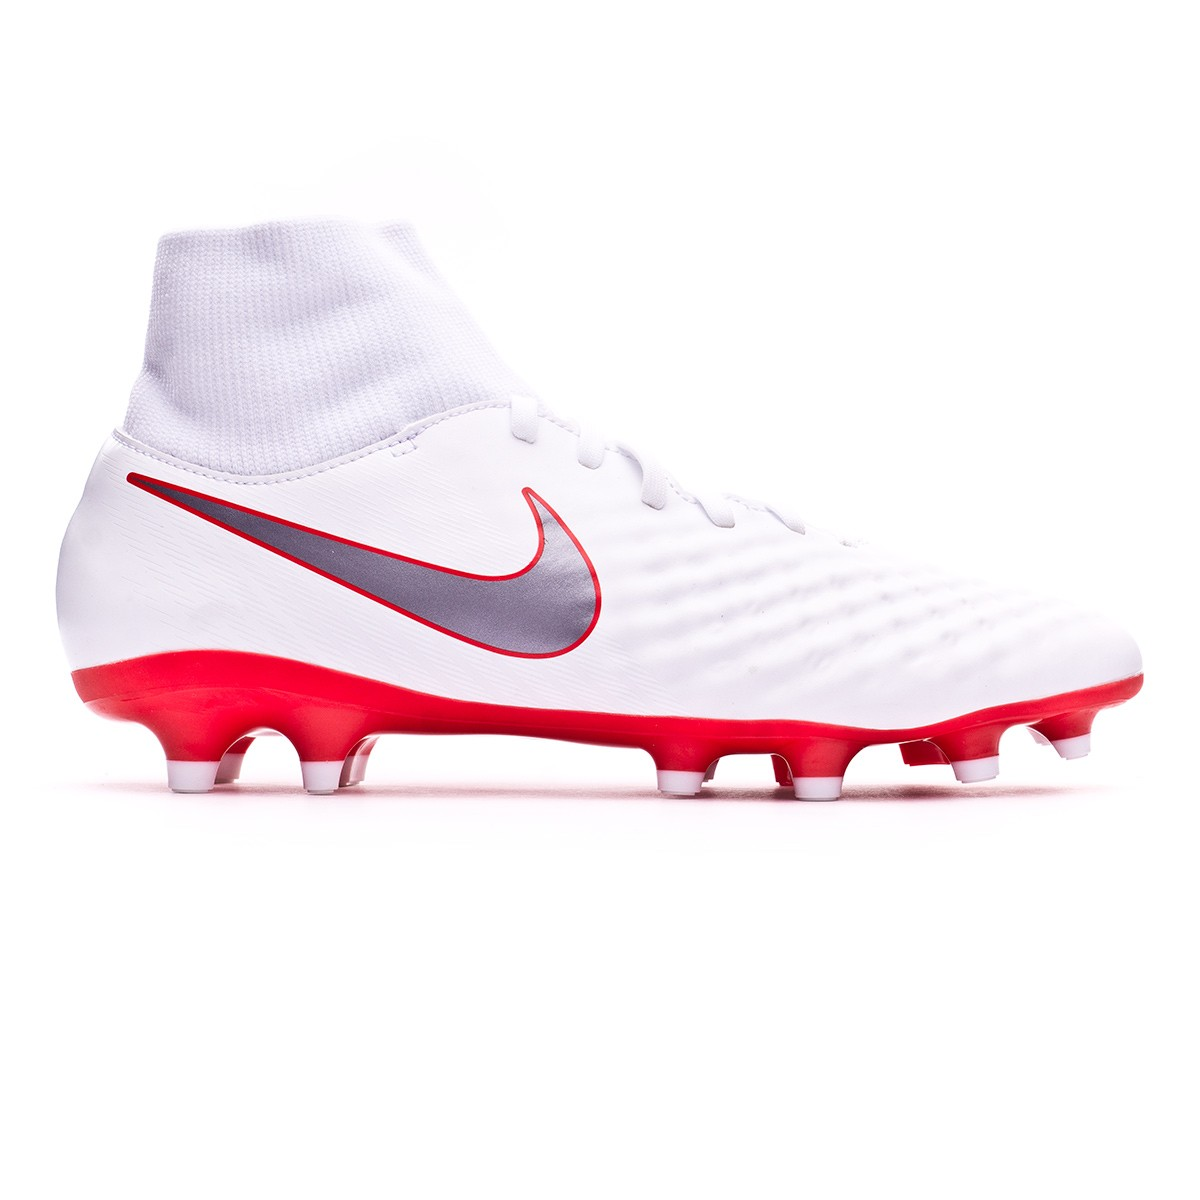 the latest 30c7c 0e81a Chaussure de foot Nike Magista Obra II Academy DF FG White-Metallic cool  grey-Light crimson - Boutique de football Fútbol Emotion